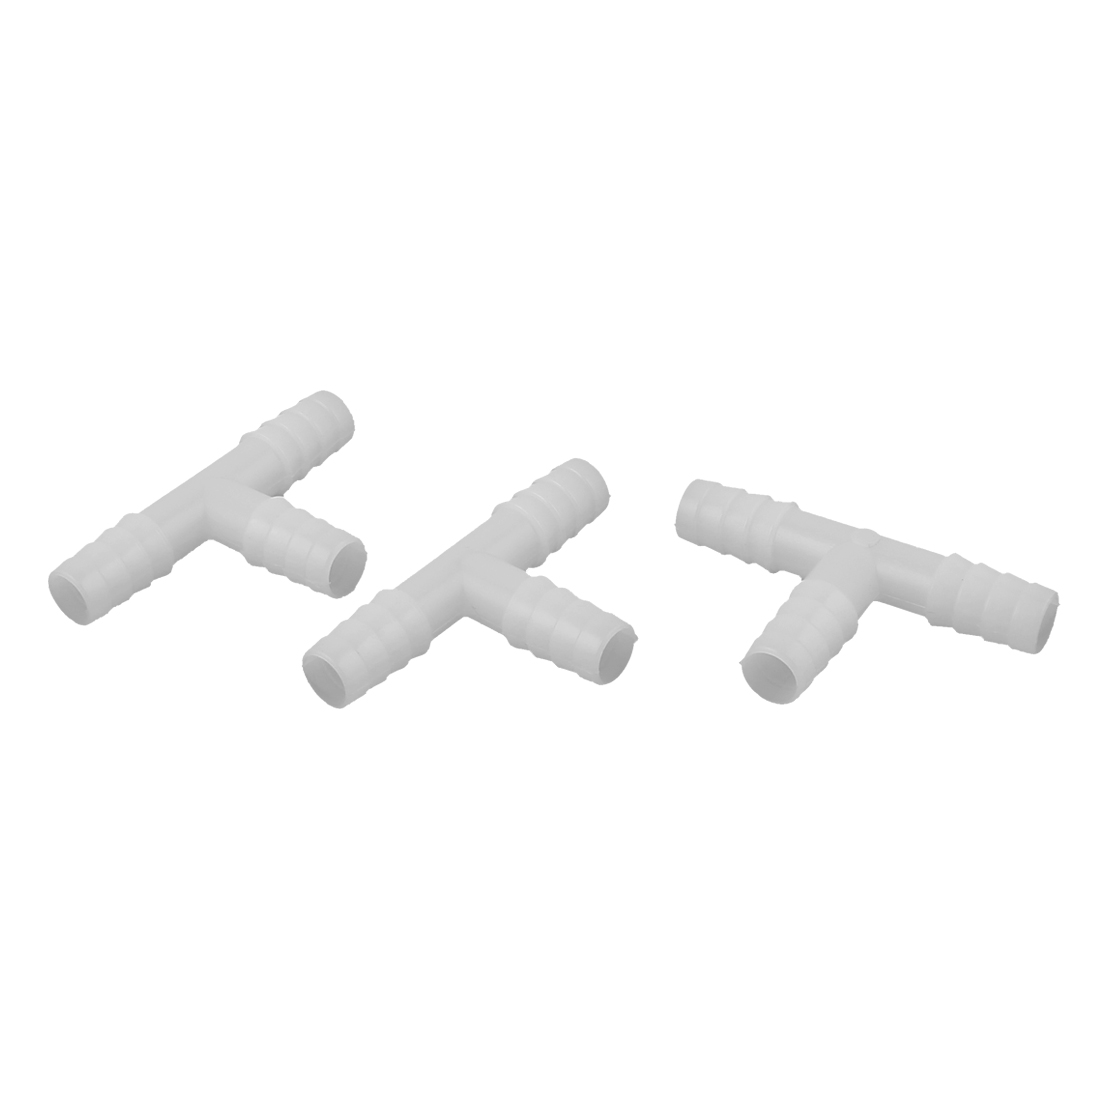 Fish Tank Aquarium Plastic T Shape Water Tubing Connectors White 3Pcs